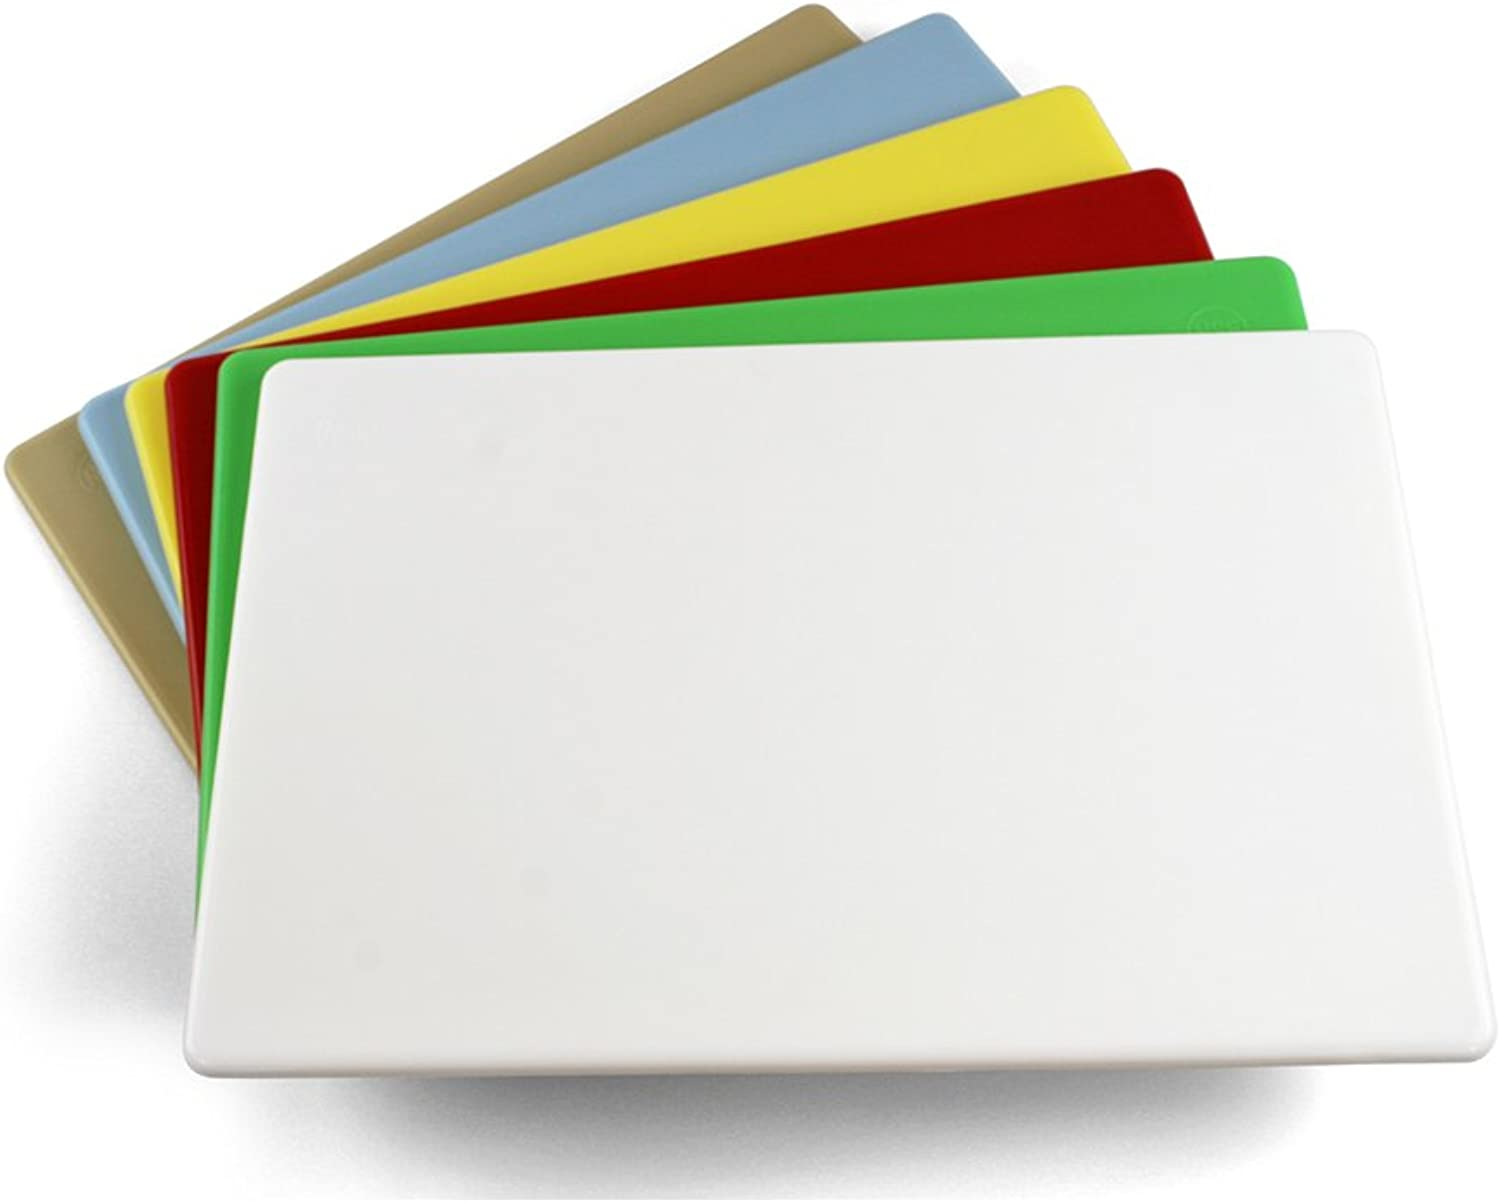 Commercial Plastic Cutting Board NSF, Extra Large - 24 x 18 x 0.5 Inch (6 Multiple colors)